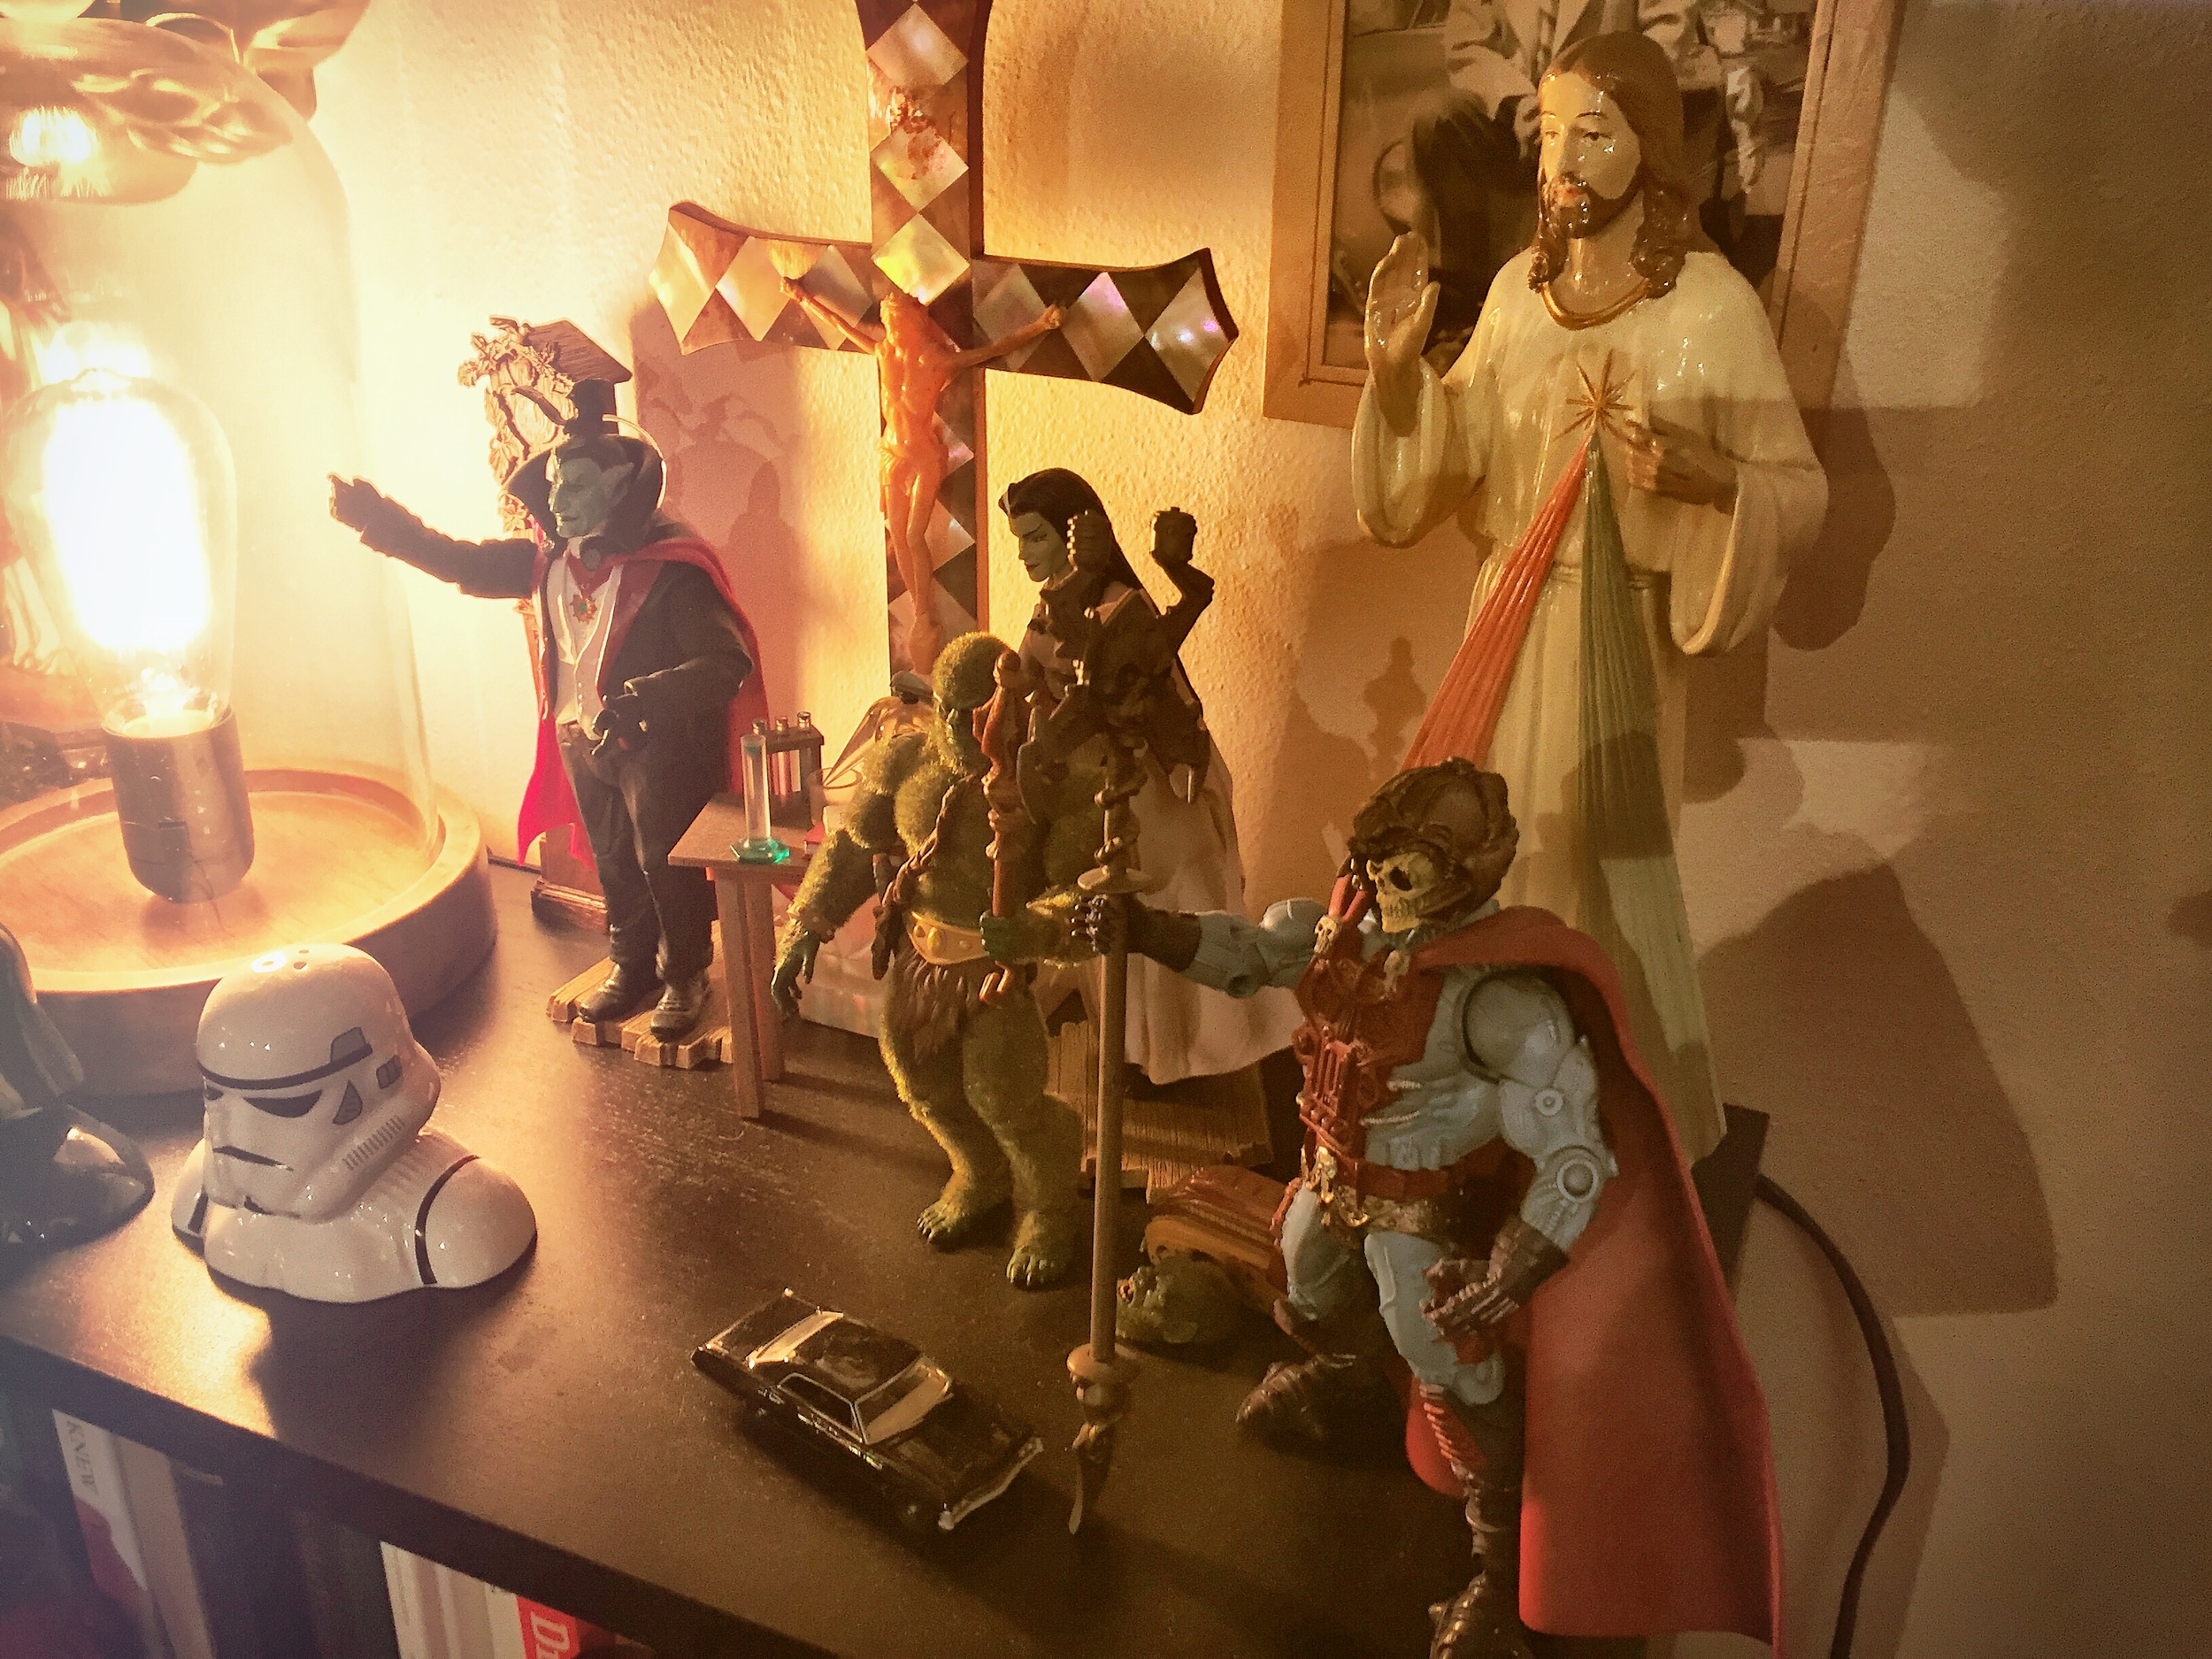 Here you see the picture of my action figures that Christian refers to on the episode.